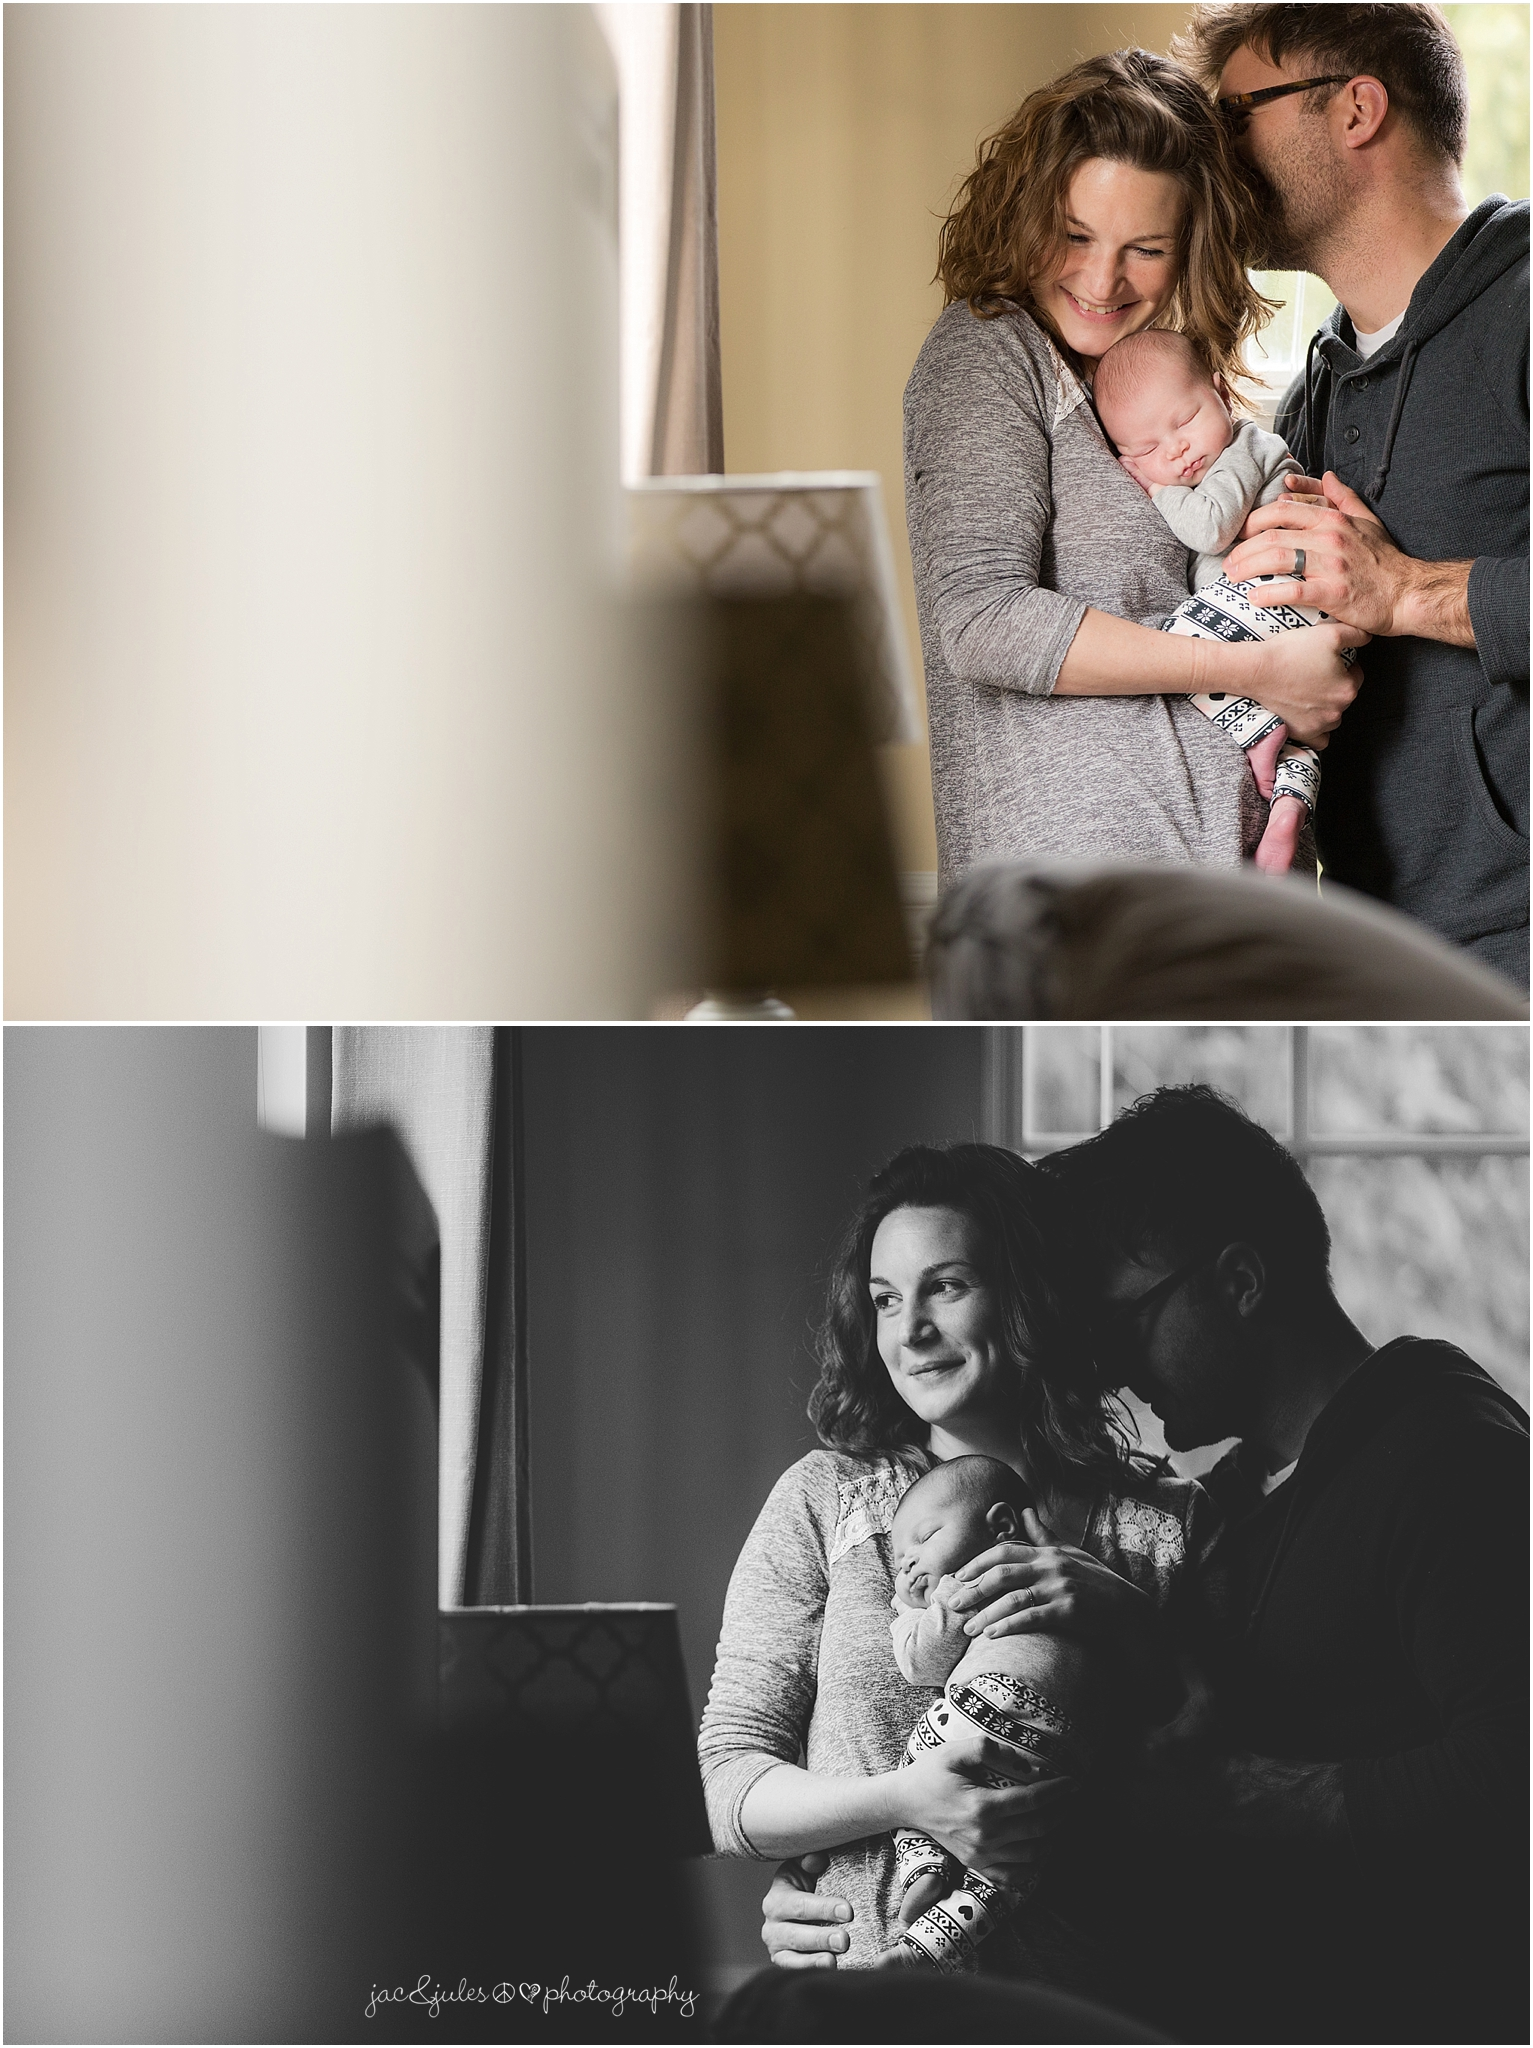 jacnjules photographs a newborn baby and her parents in their home in toms river, nj